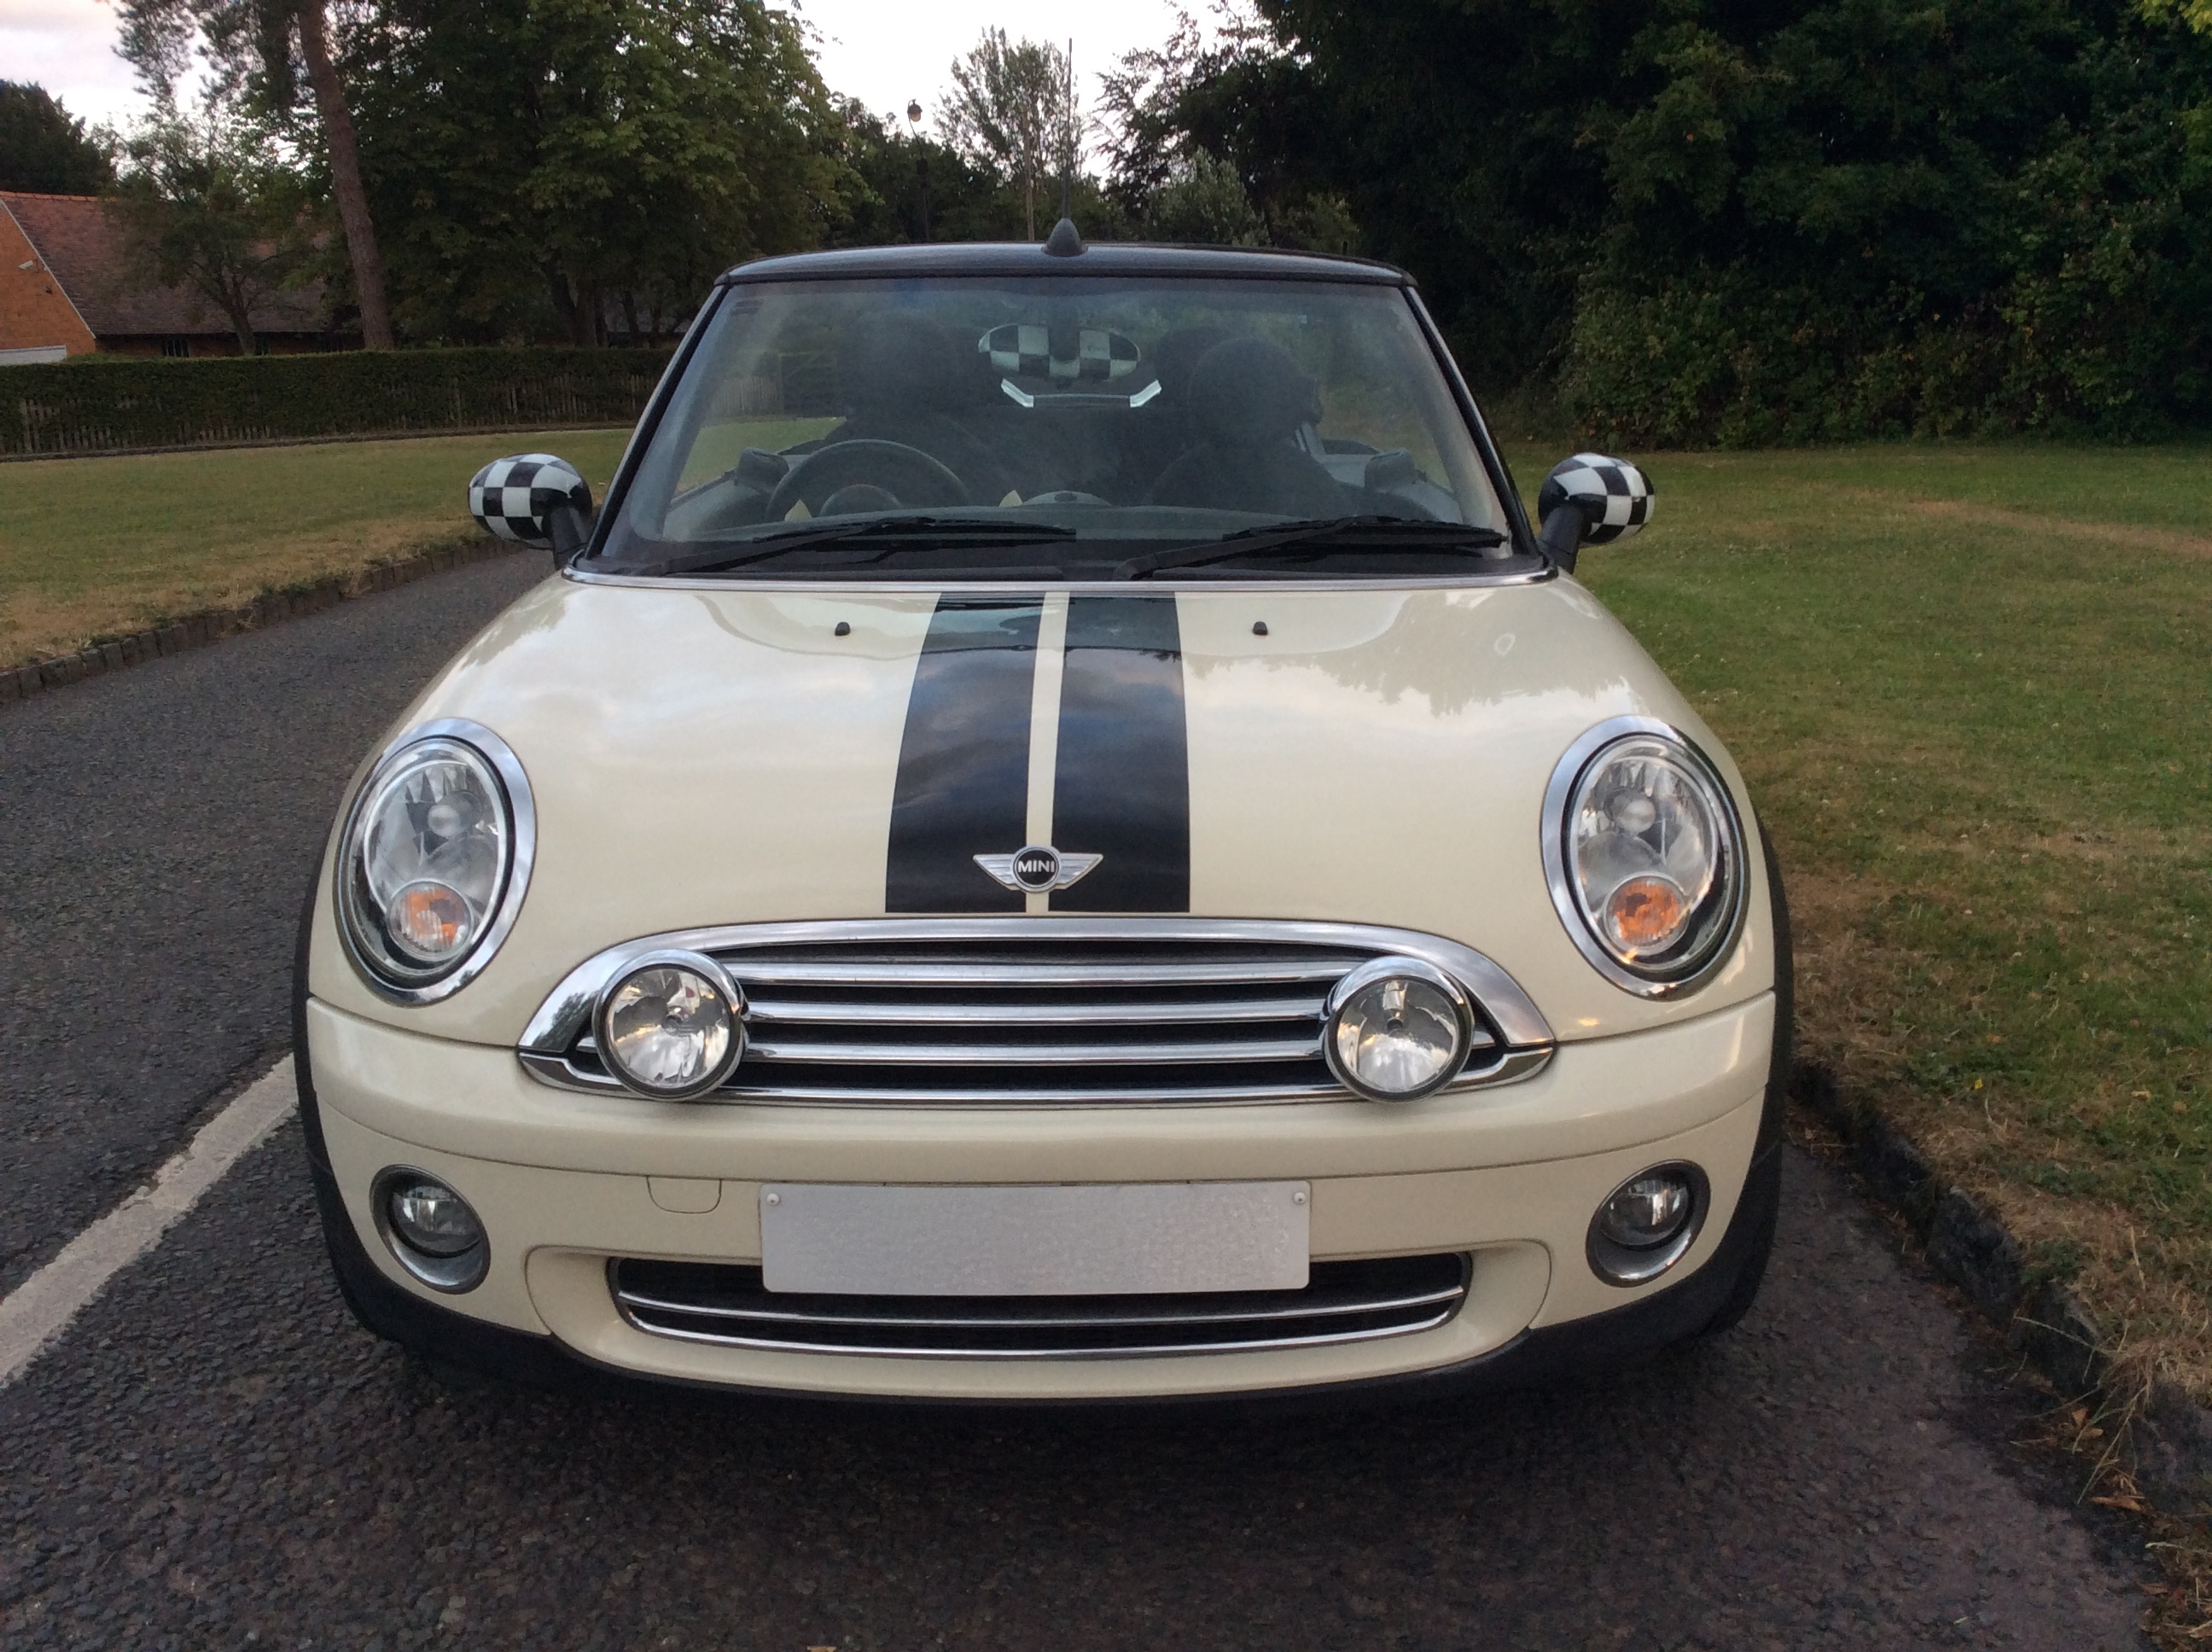 Mini Cooper Convertible For Sale >> The very glamorous Irene chose this 2009 MINI Cooper Convertible in Pepper White with low miles ...